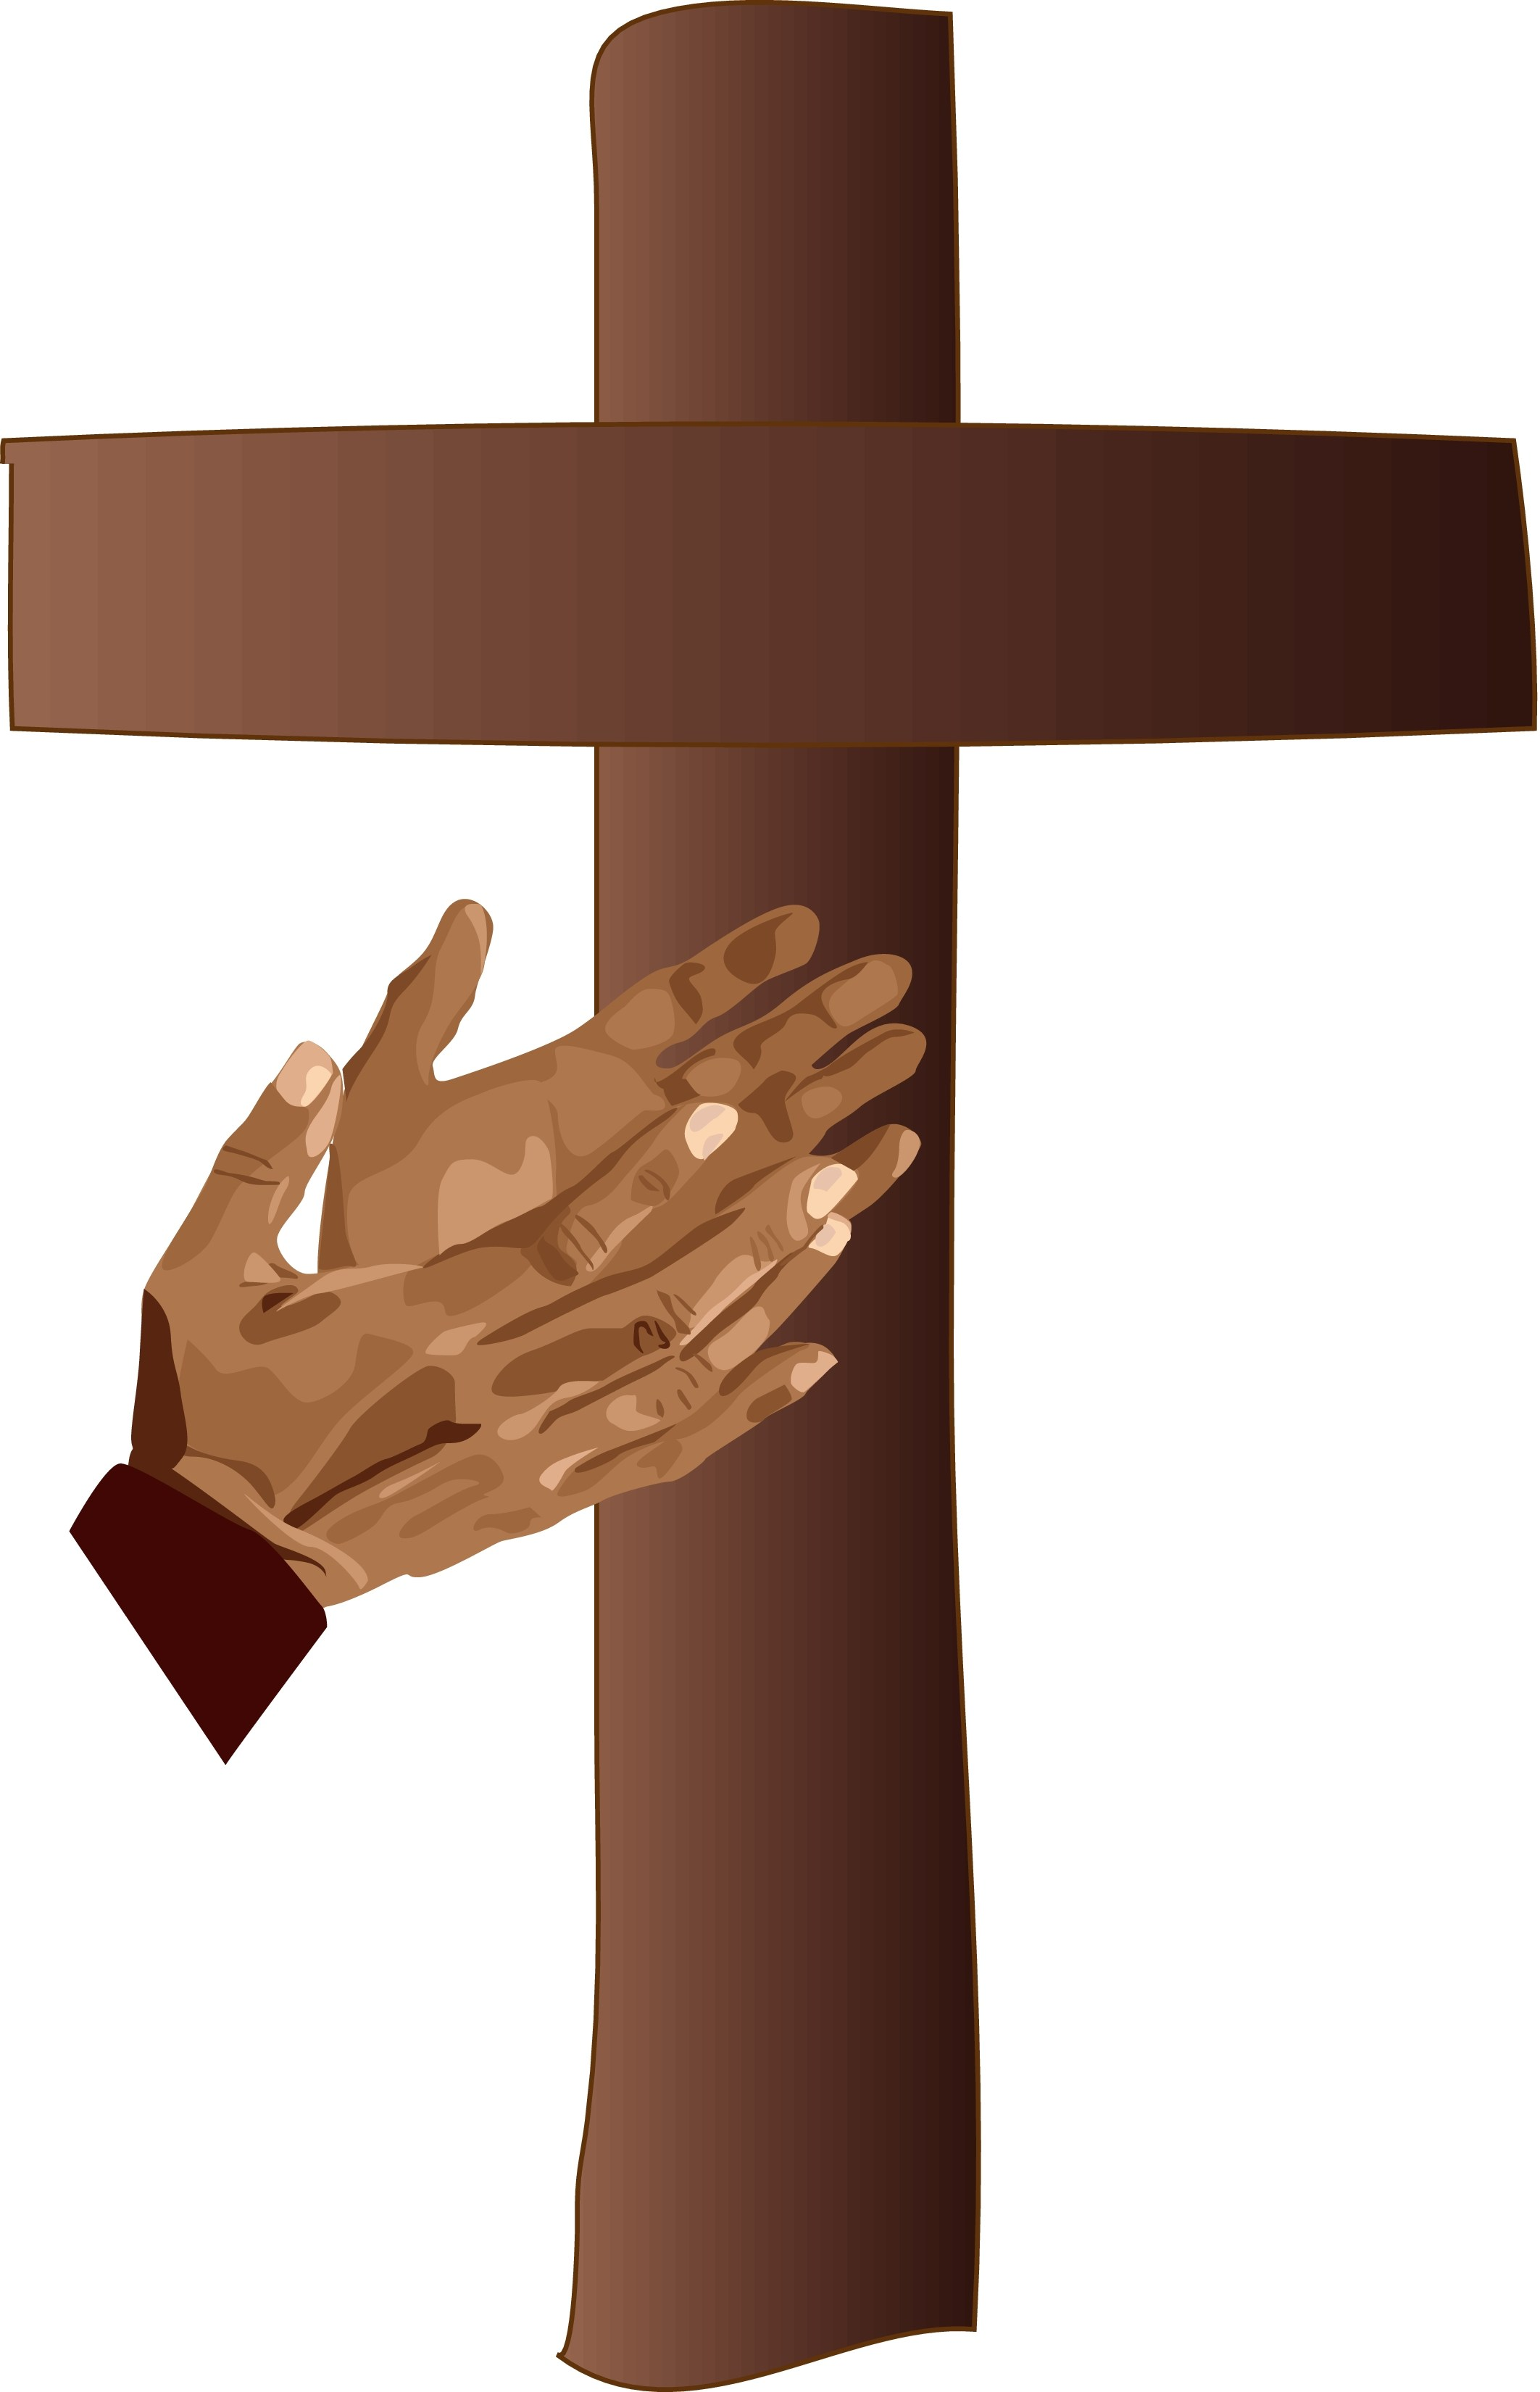 Praying hands and cross clipart 7 » Clipart Portal.